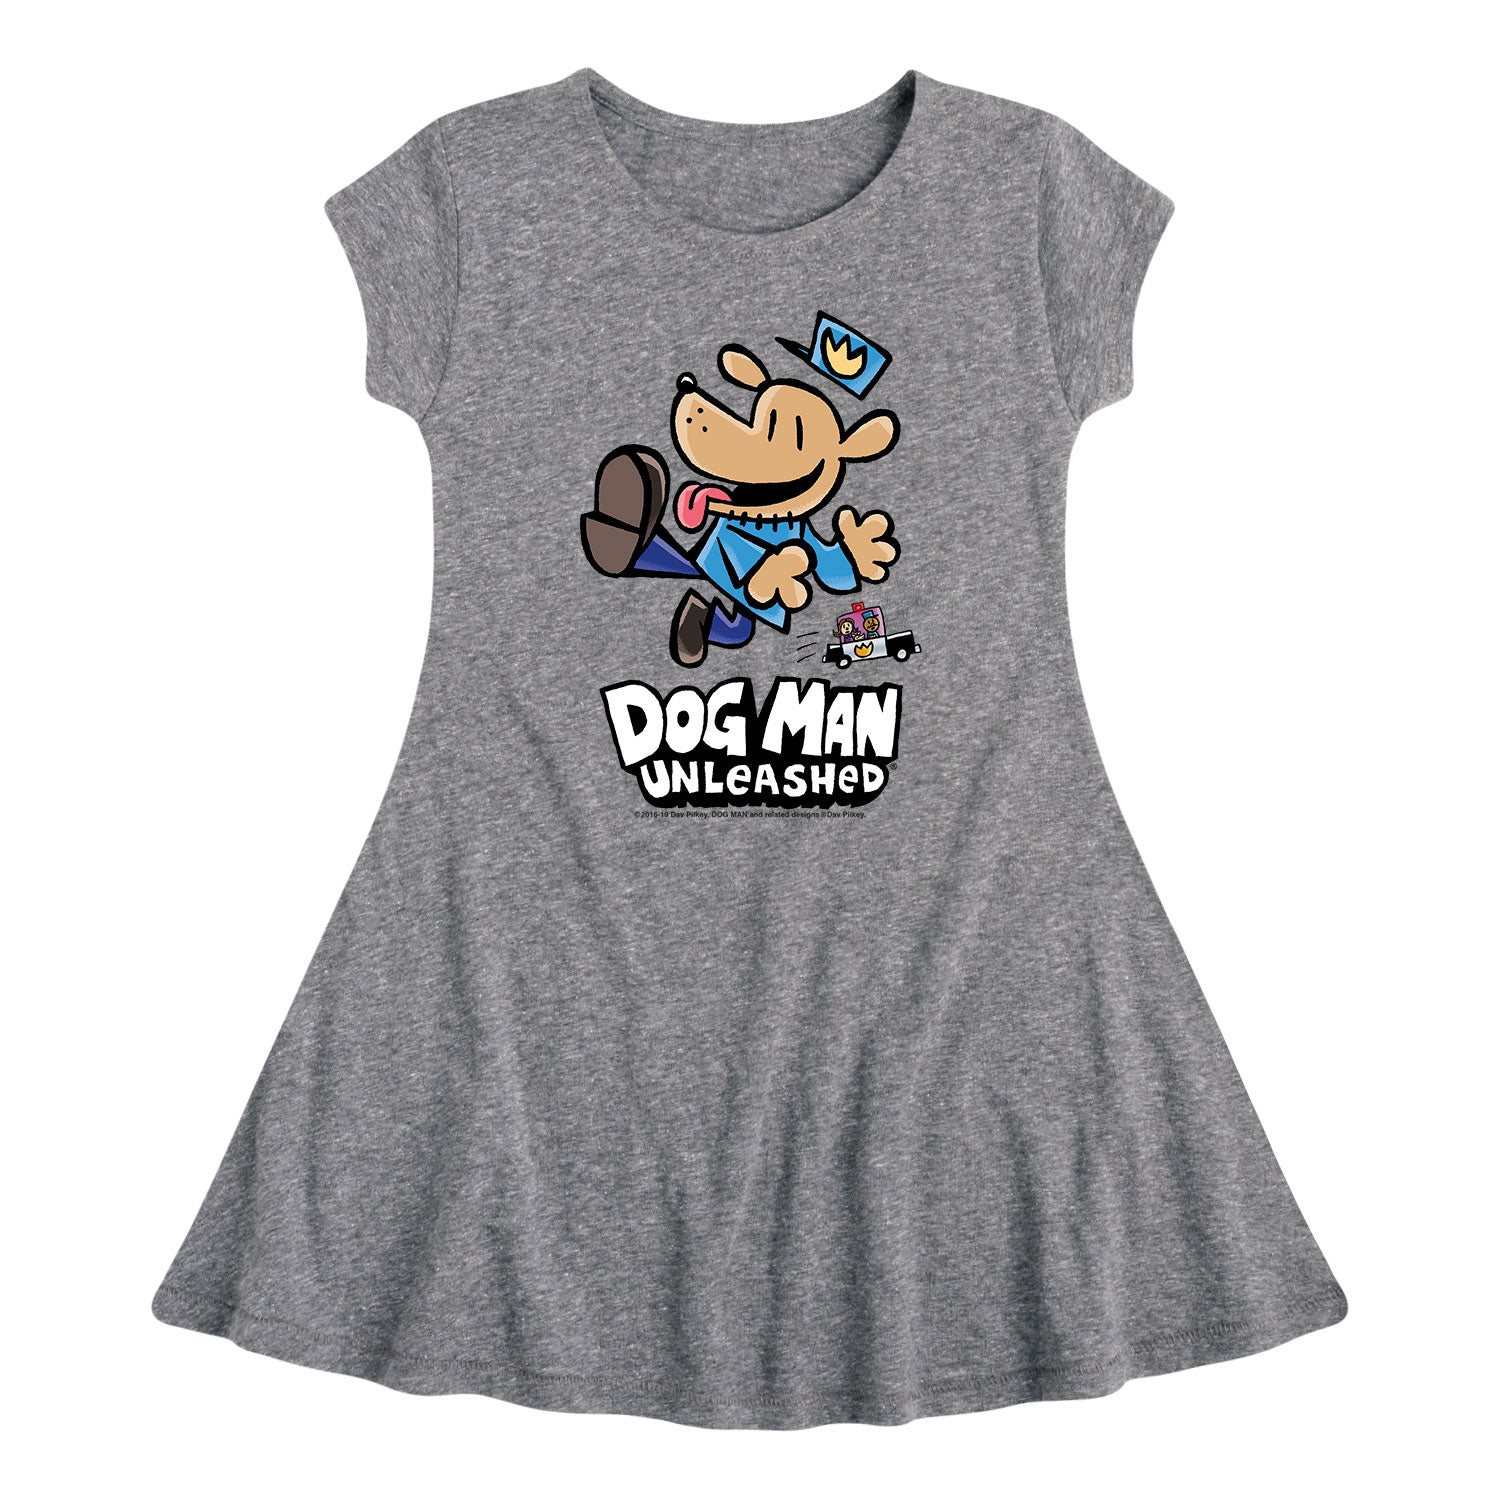 Dog Man Unleashed - Youth & Toddler Girls Fit and Flare Dress